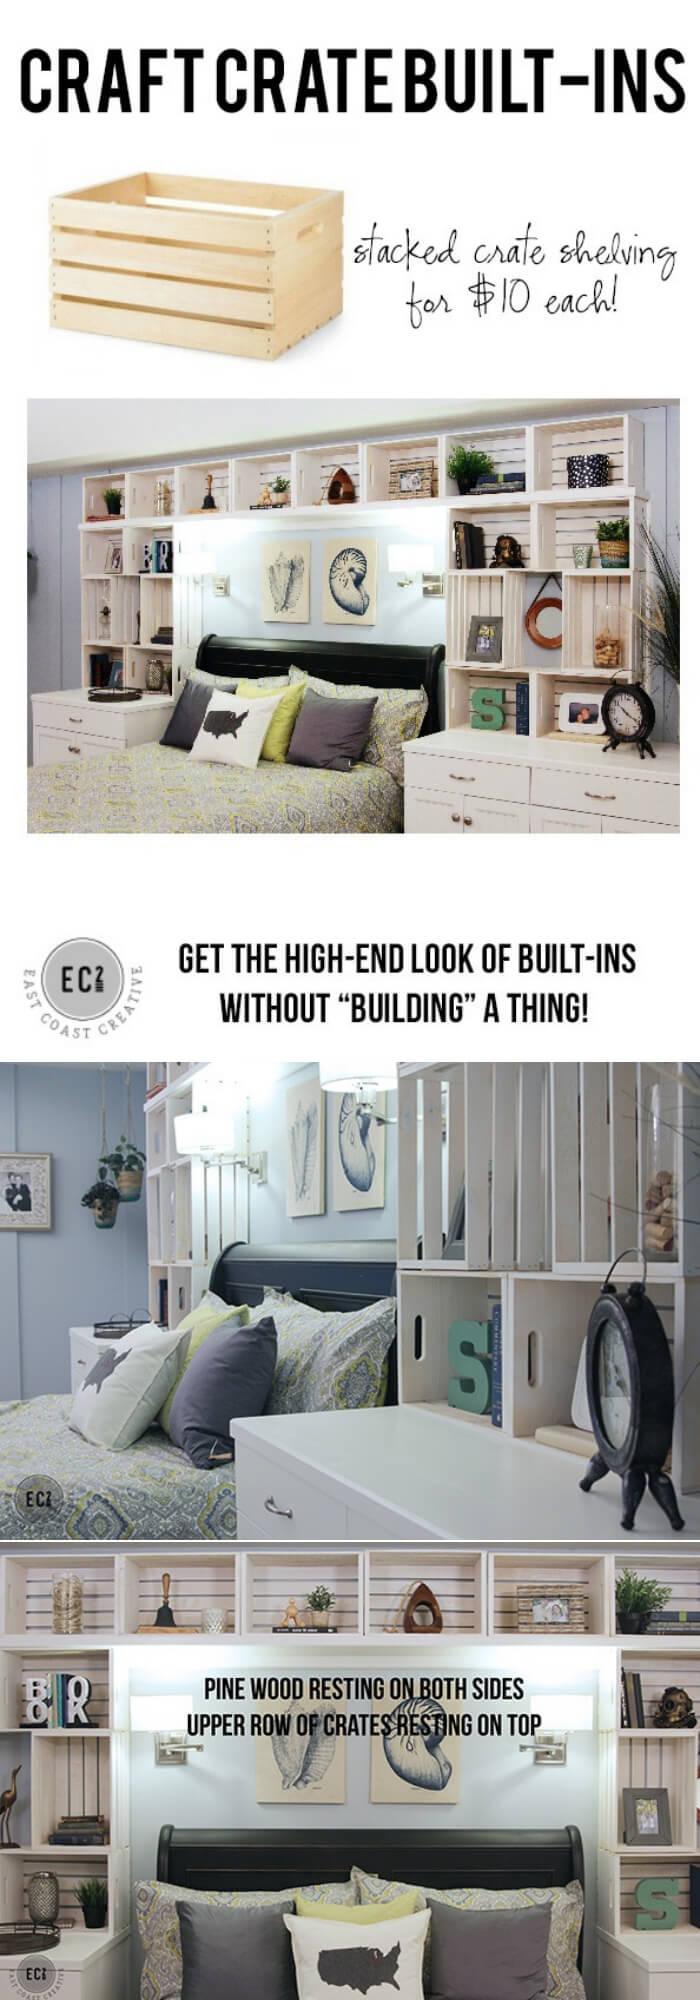 Crate Built-in Shelving | Best DIY Wood Crate Projects & Ideas